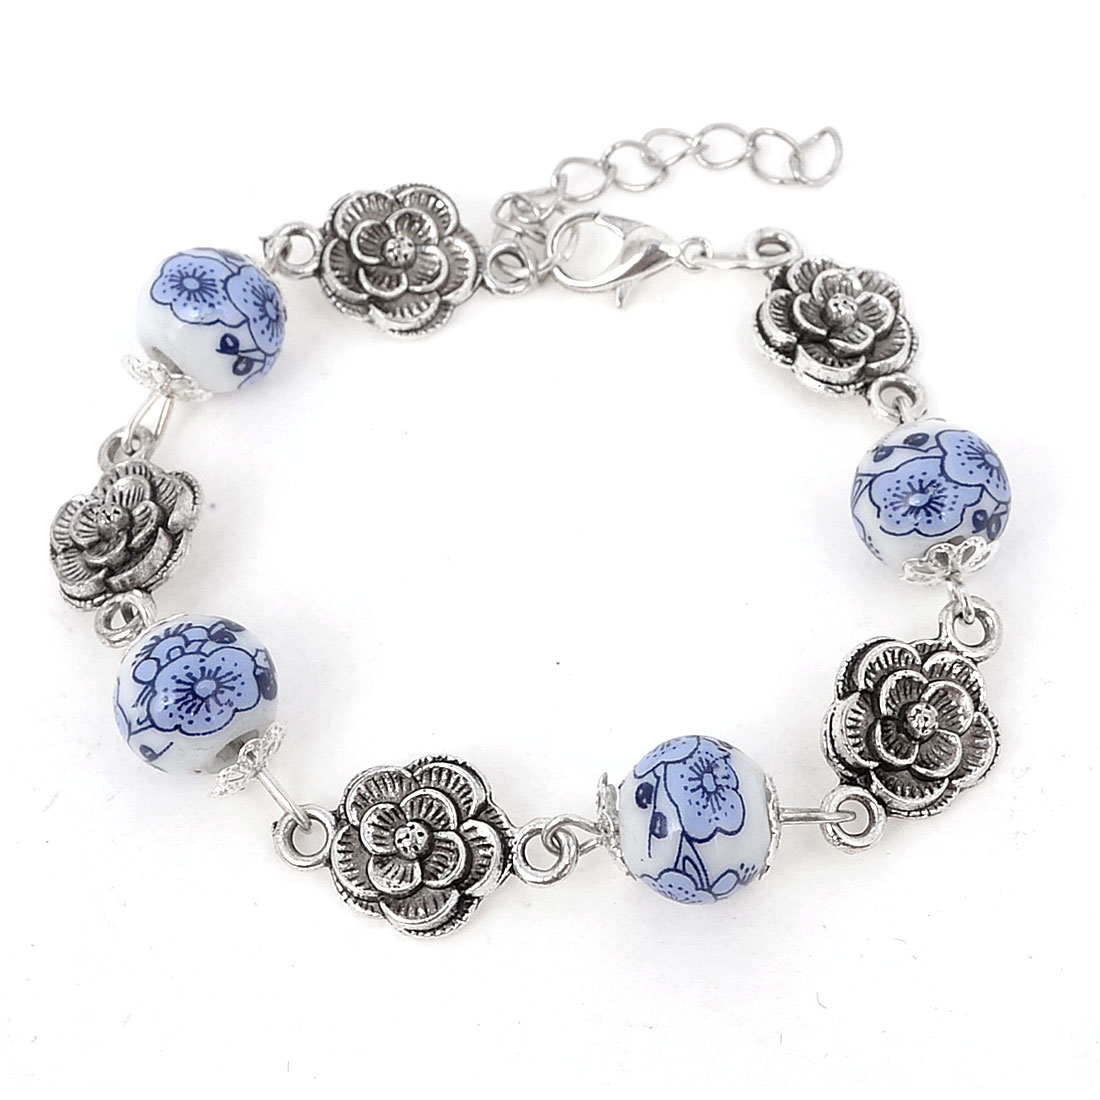 Lady Retro Style Metal Flower Accent Adjustable Chain Ceramic Beads Bracelet